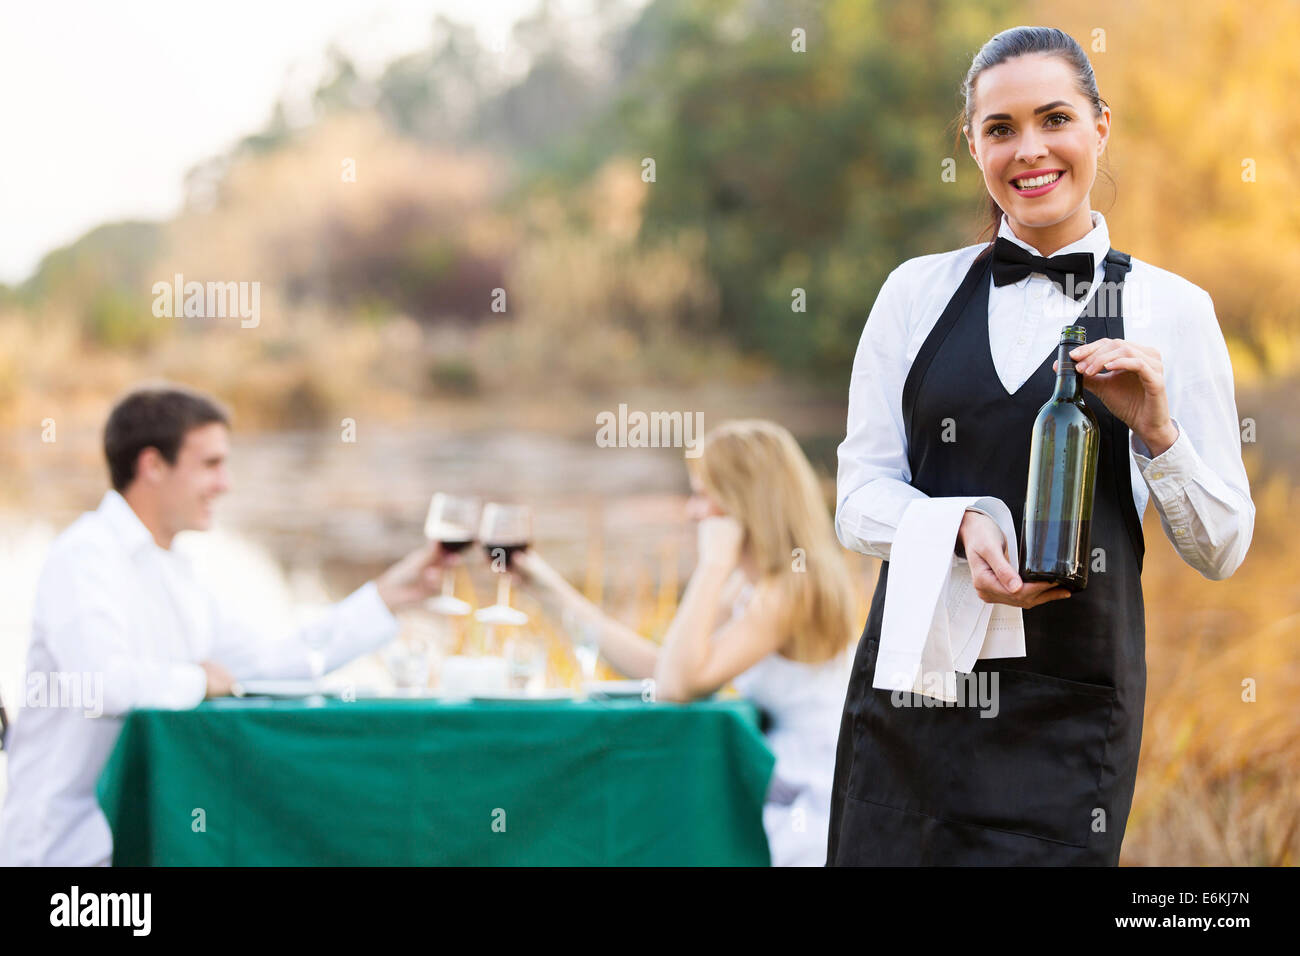 attractive waitress holding a bottle of wine in front of customers - Stock Image